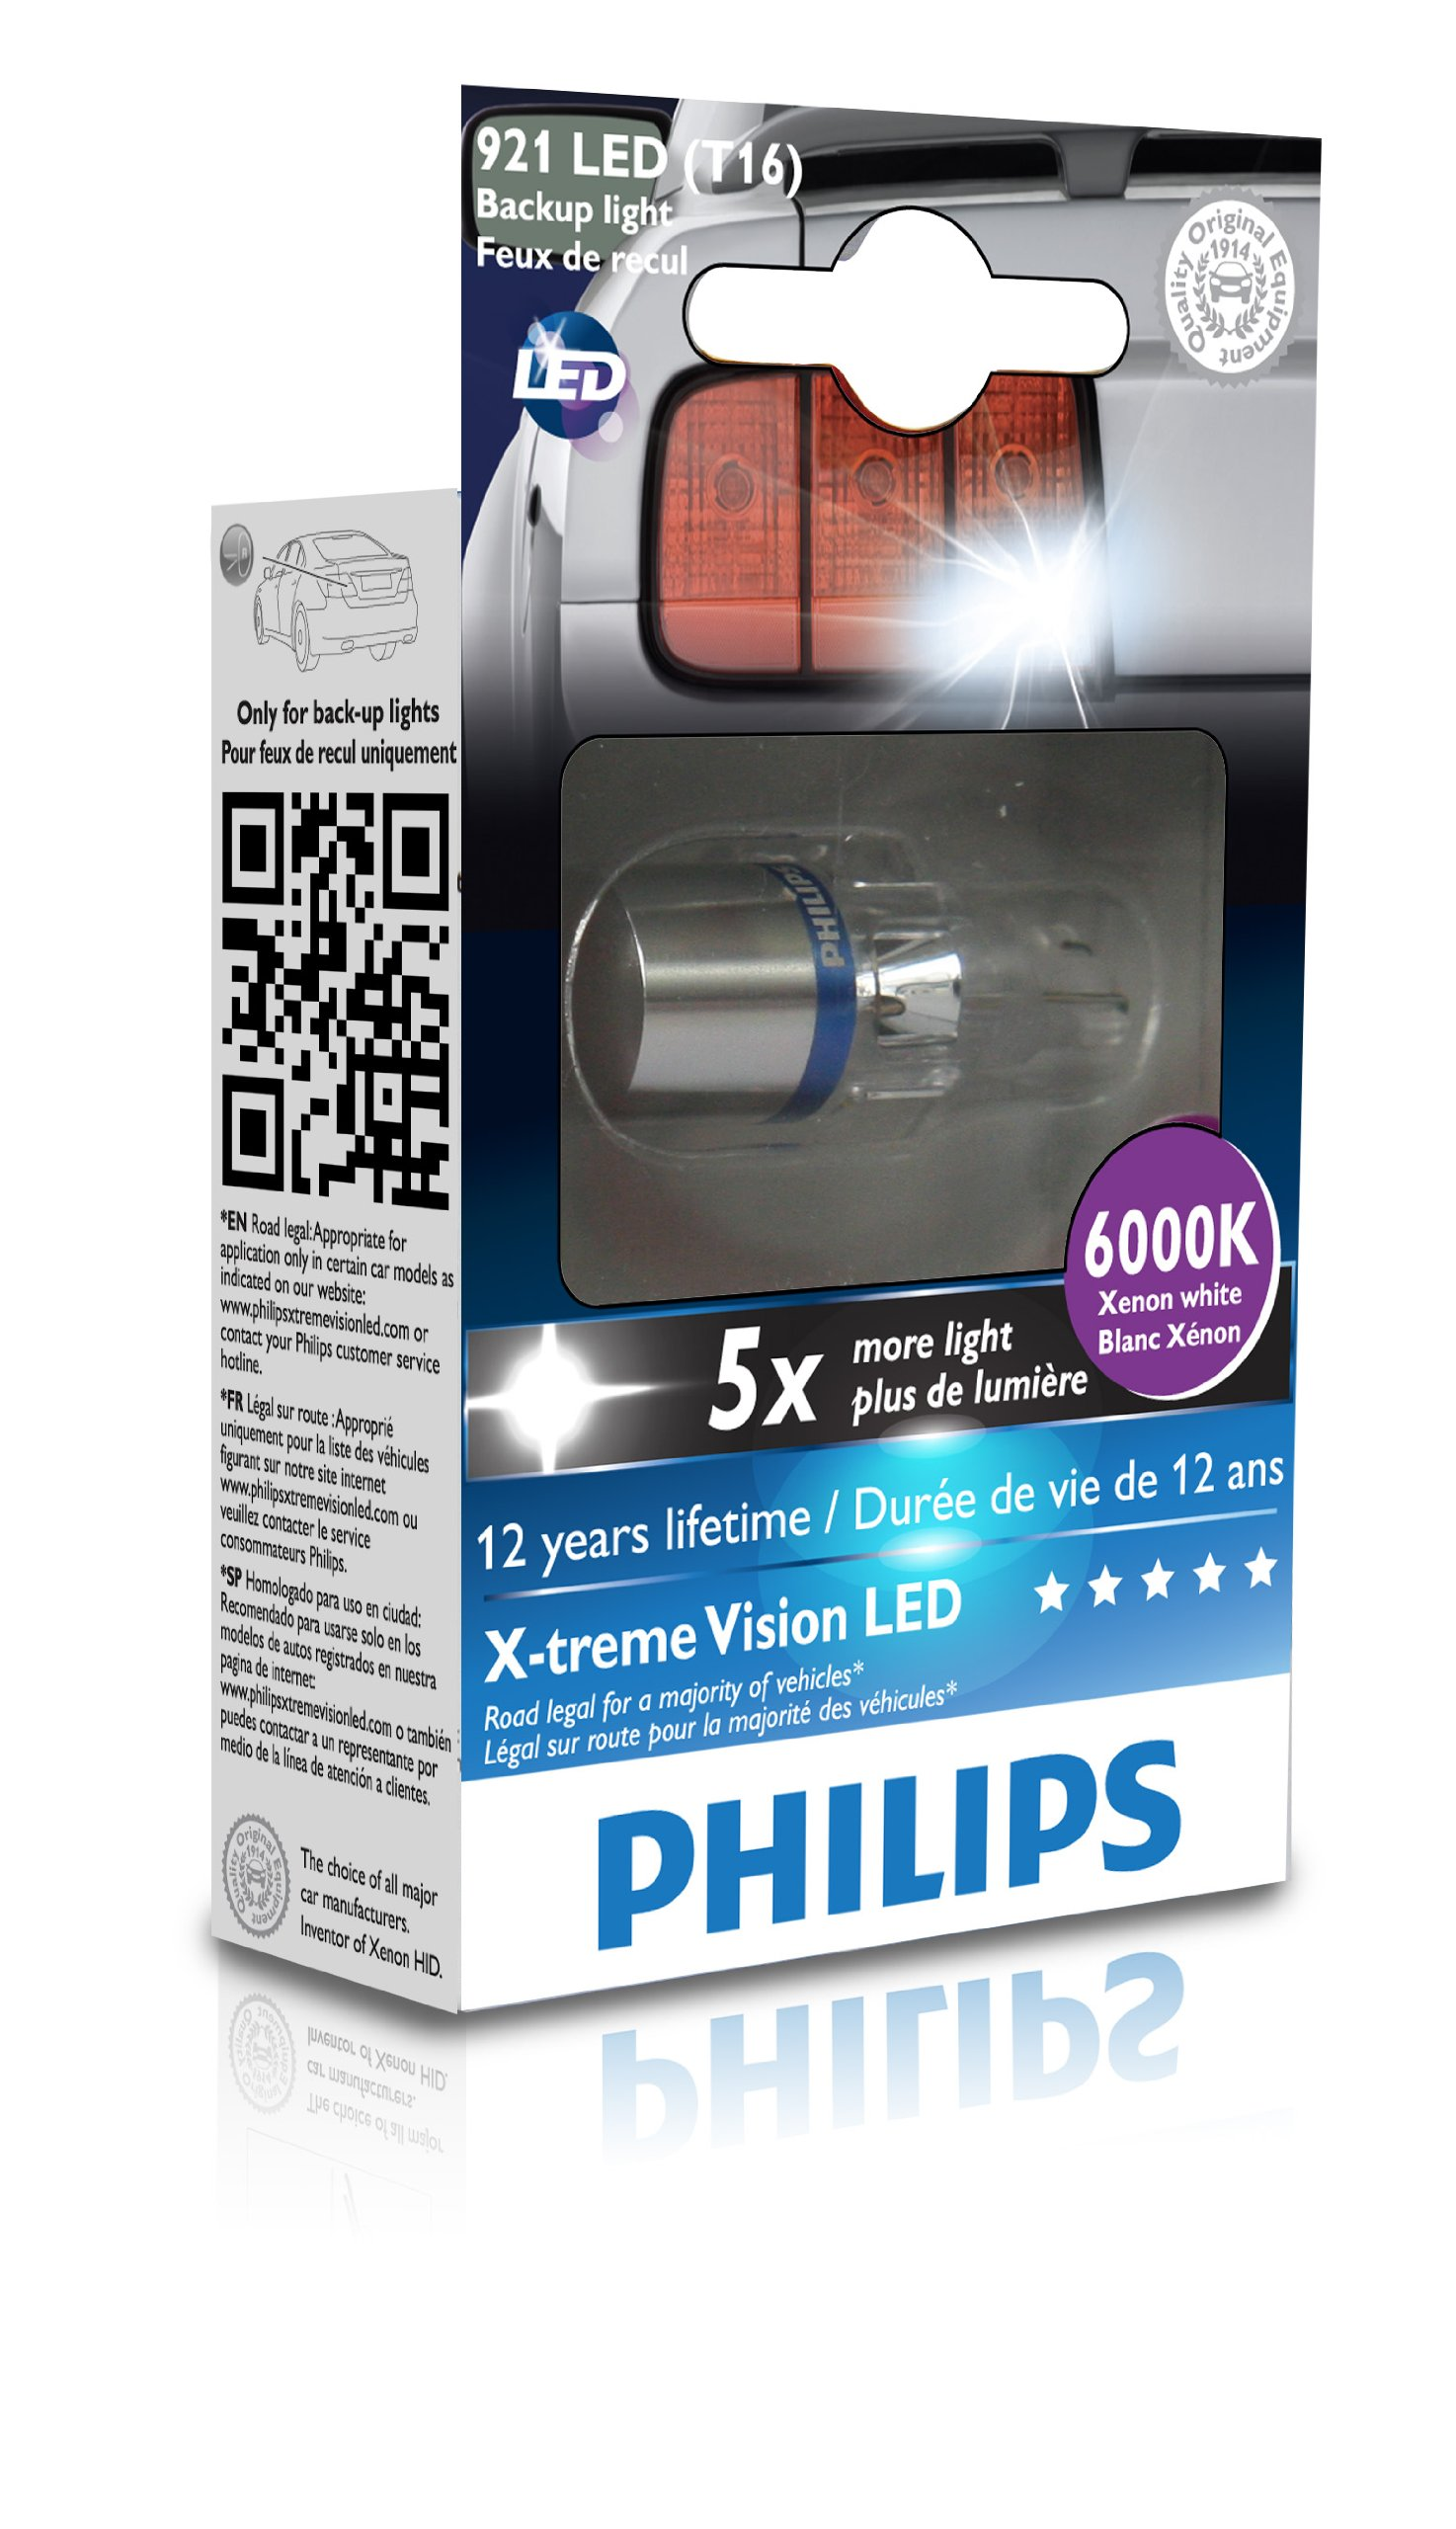 Philips 921 T16 retrofit X-tremeVision LED Exterior light (Pack of 1)